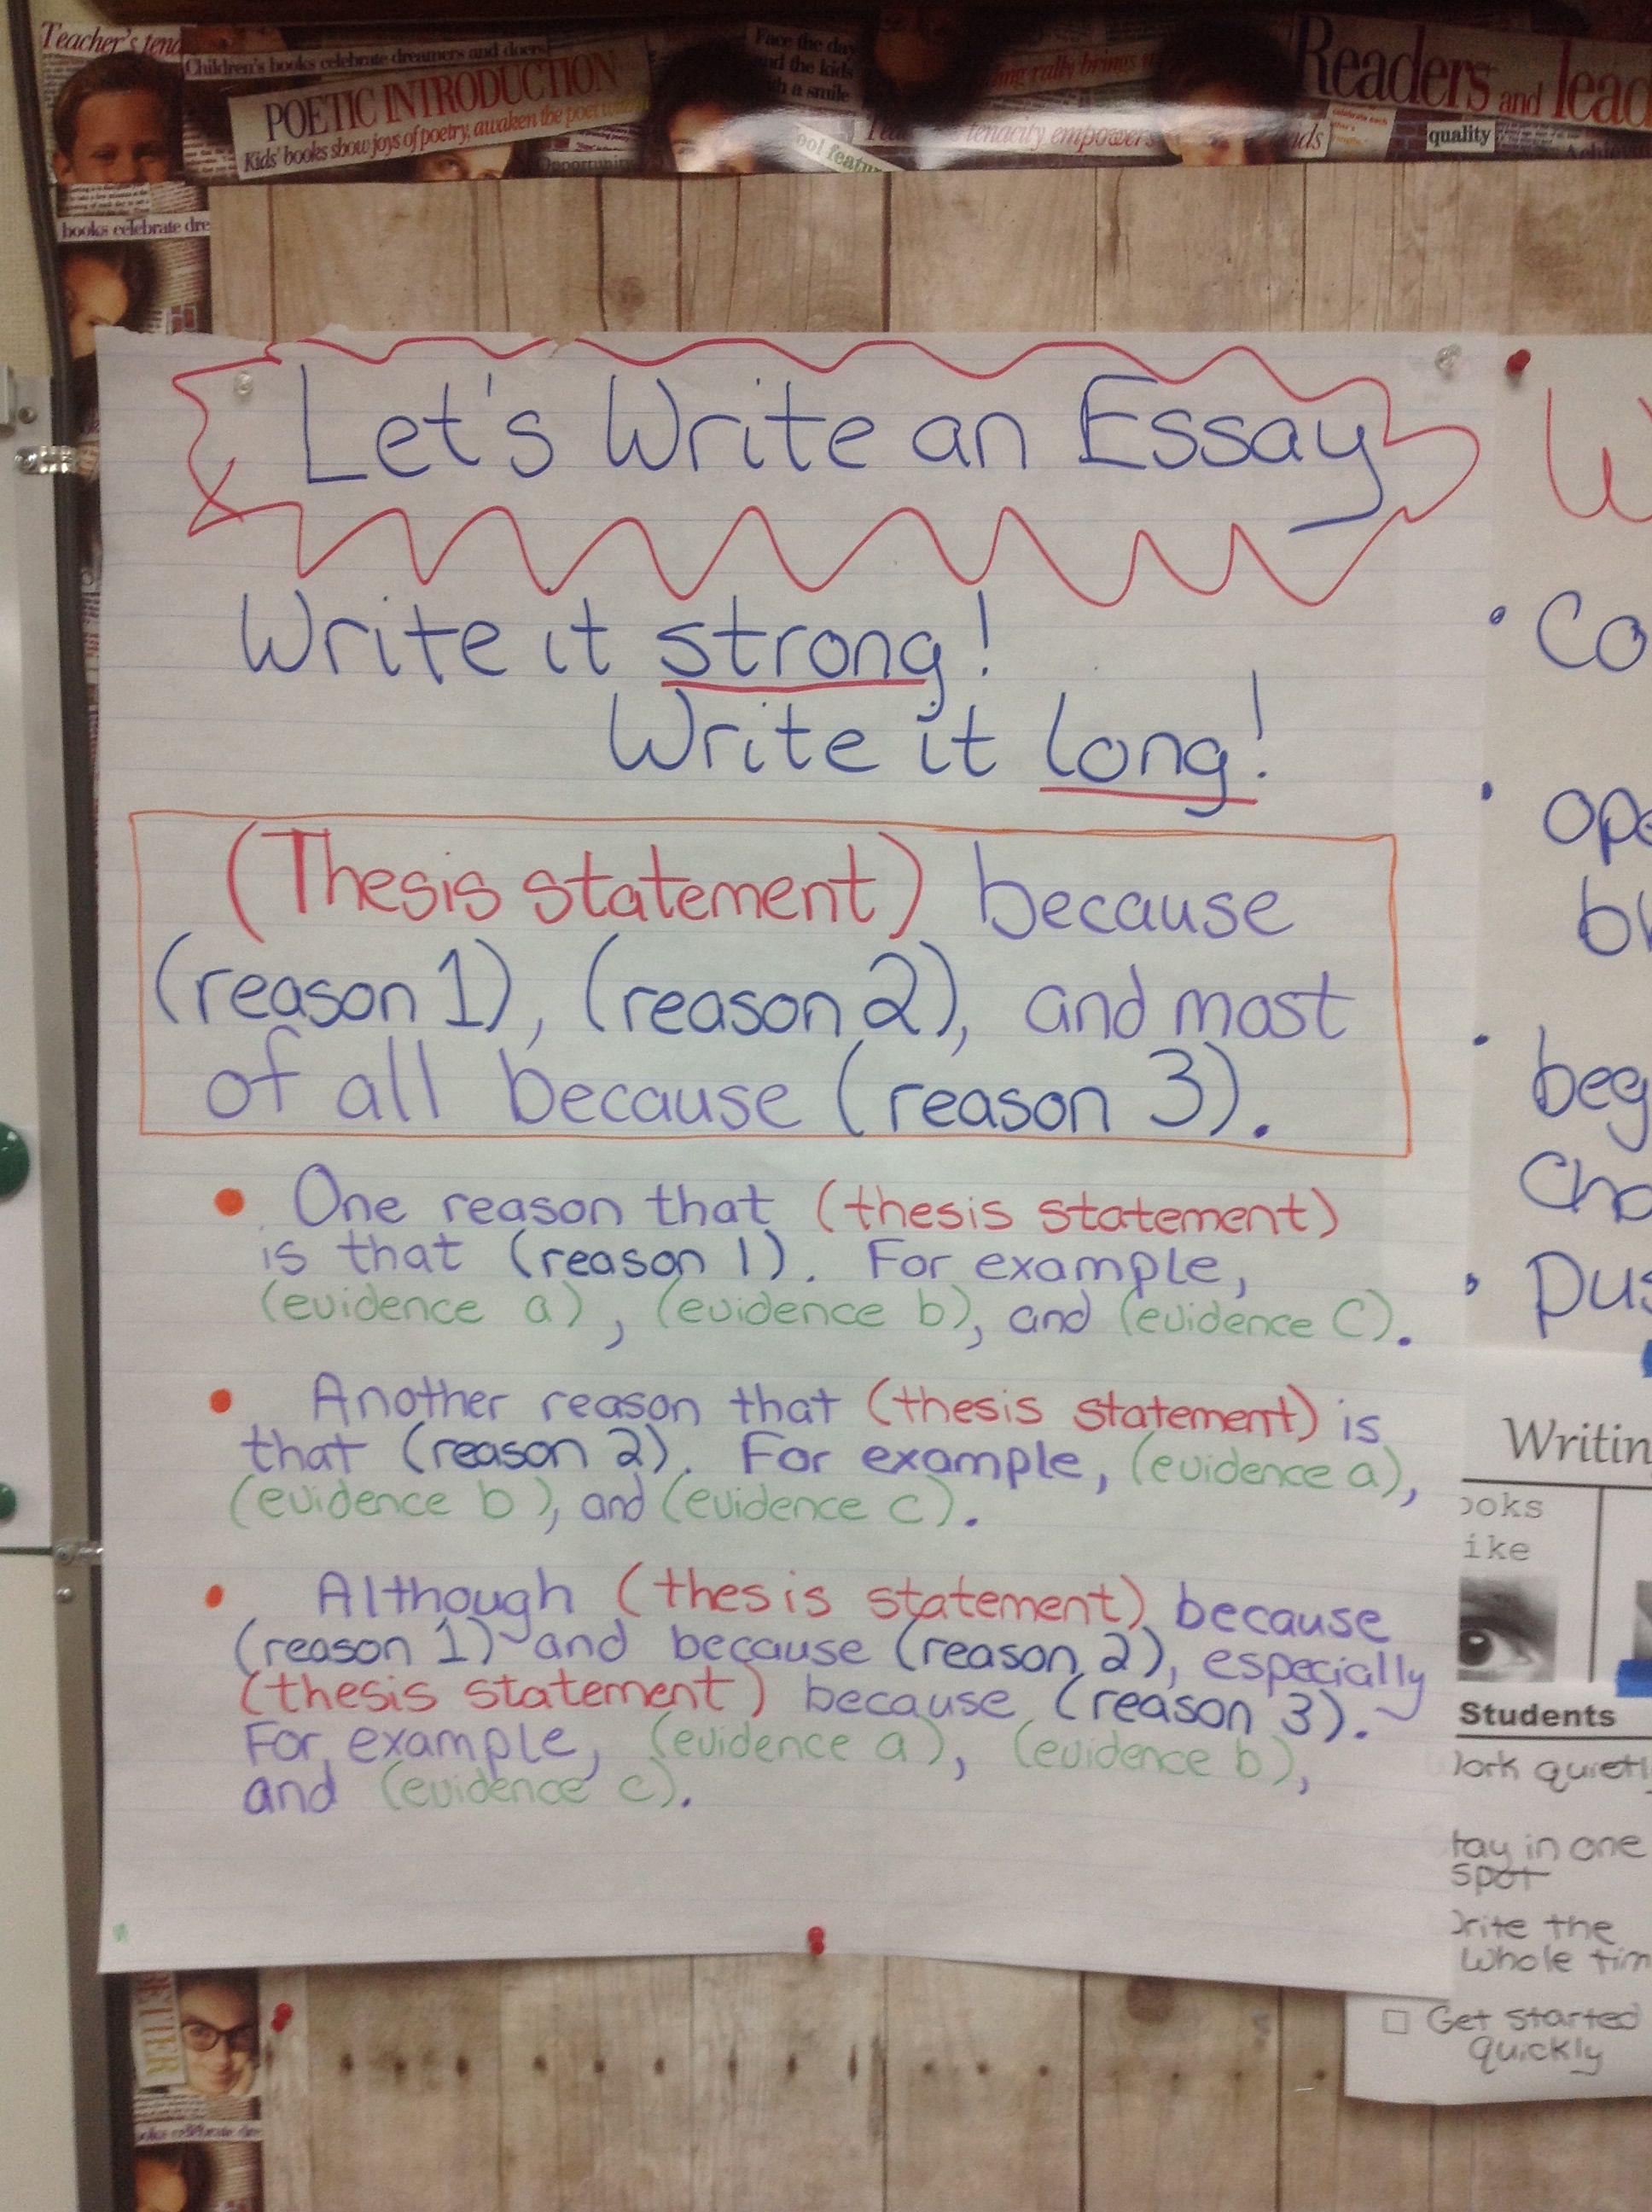 Let   write an essay anchor chart structured outline for opinion writing also rh pinterest